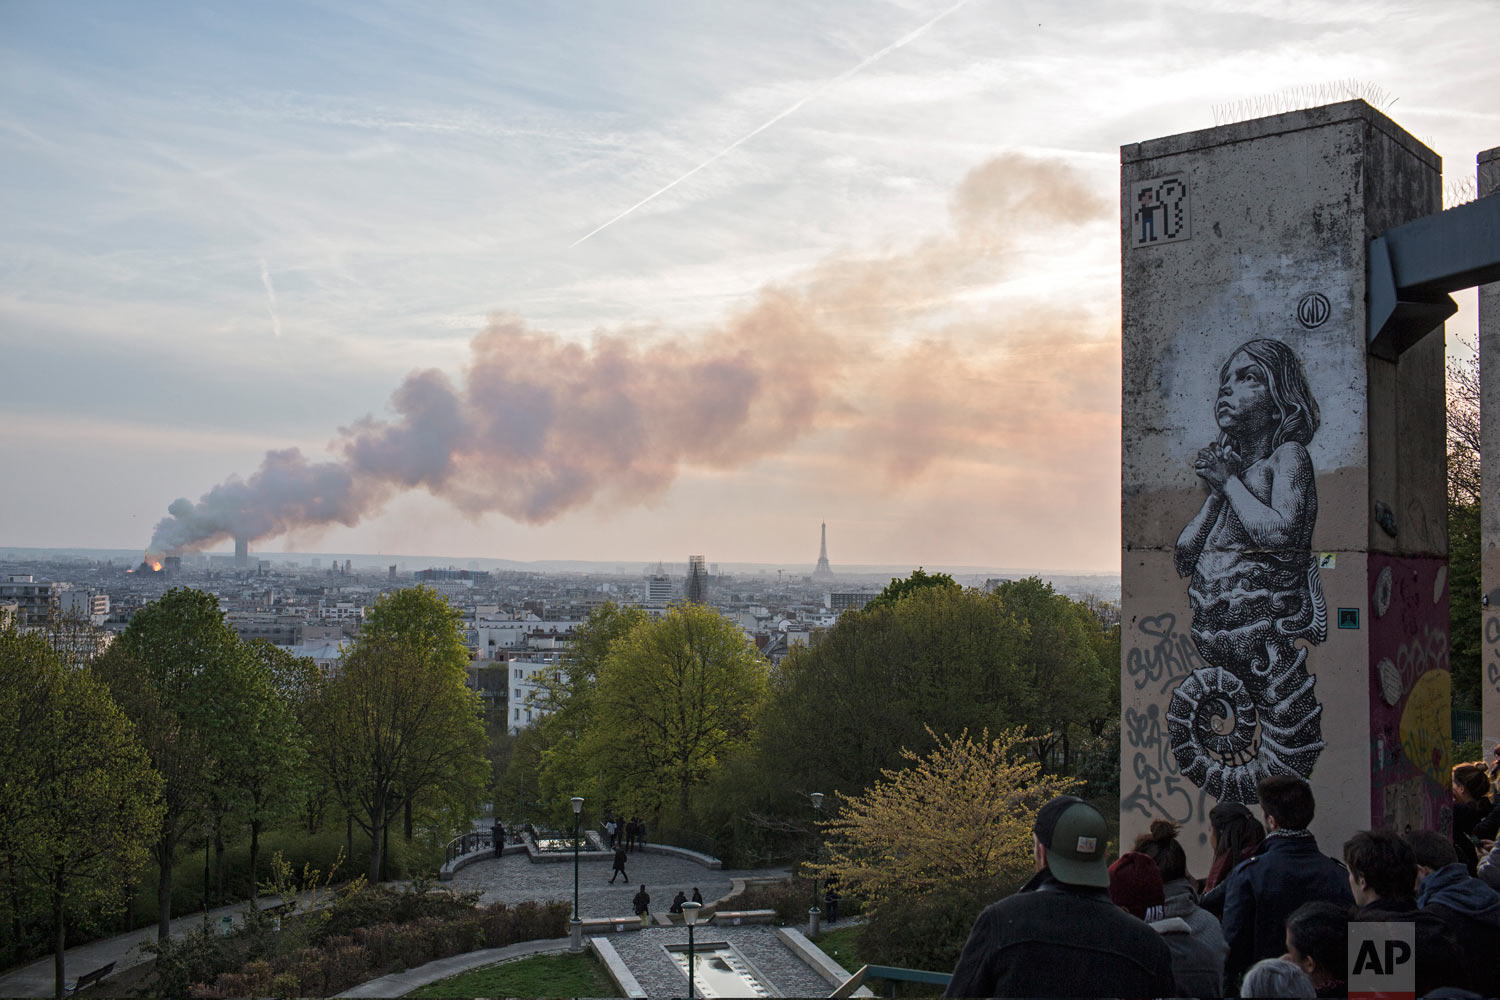 People watch Notre Dame Cathedral burn in Paris, Monday, April 15, 2019. (AP Photo/Rafael Yaghobzadeh)